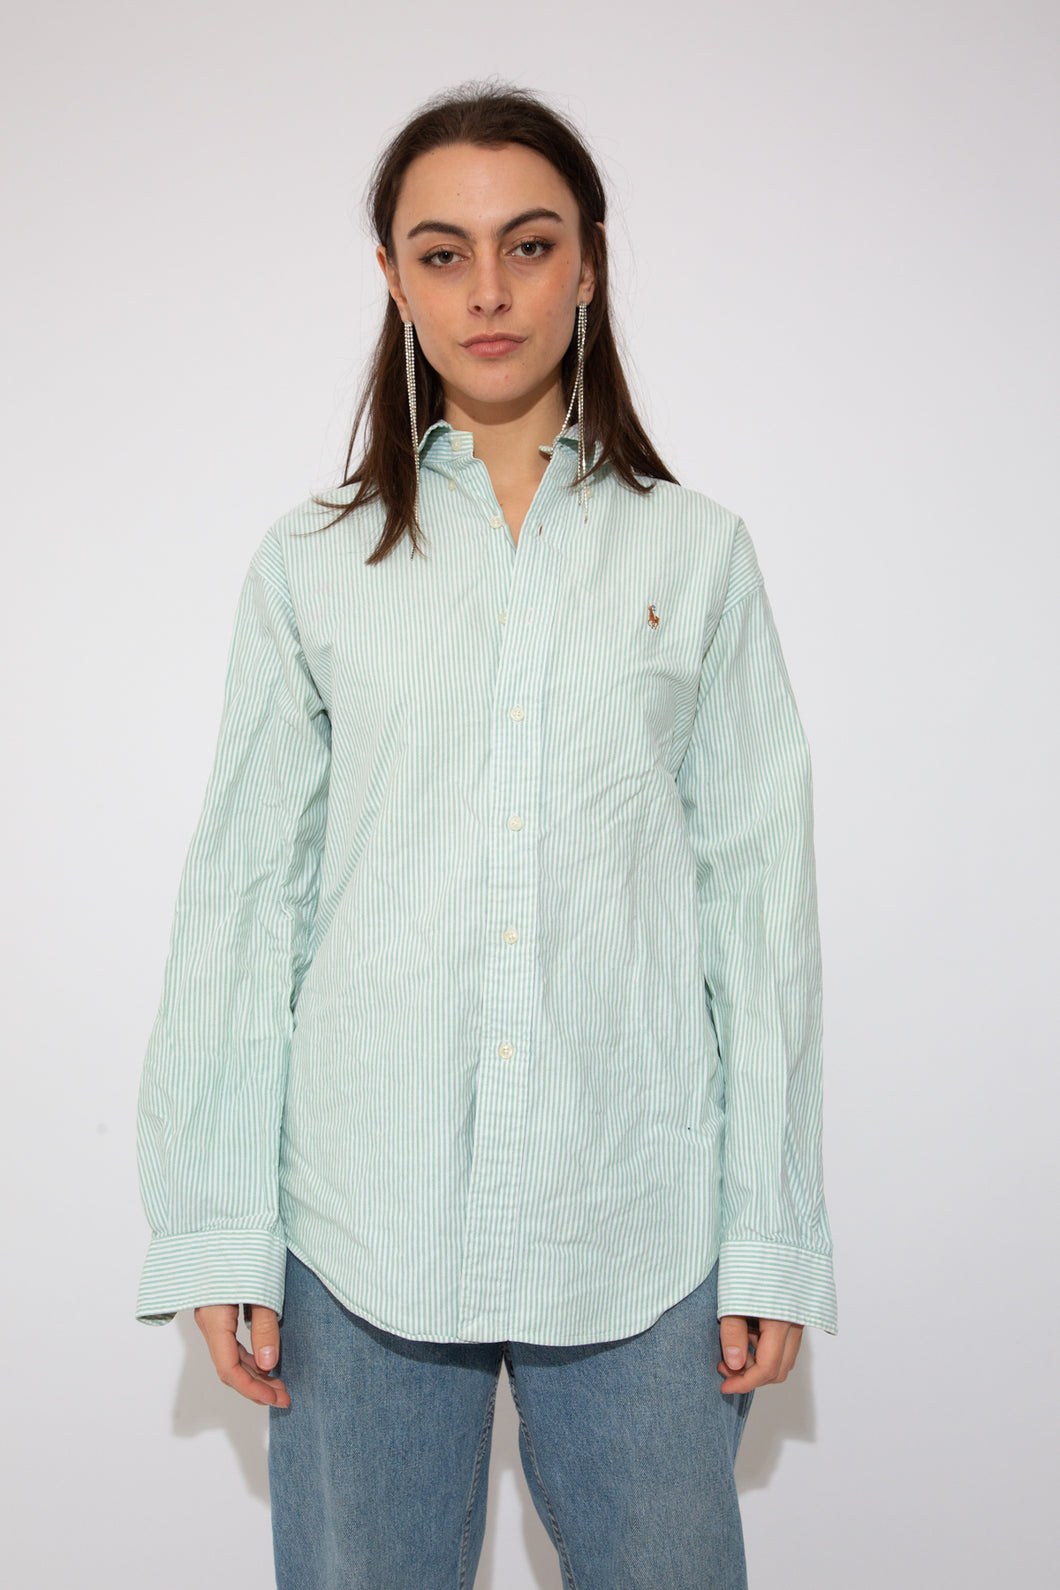 Model wearing Ralph Lauren button up shirt, magichollow